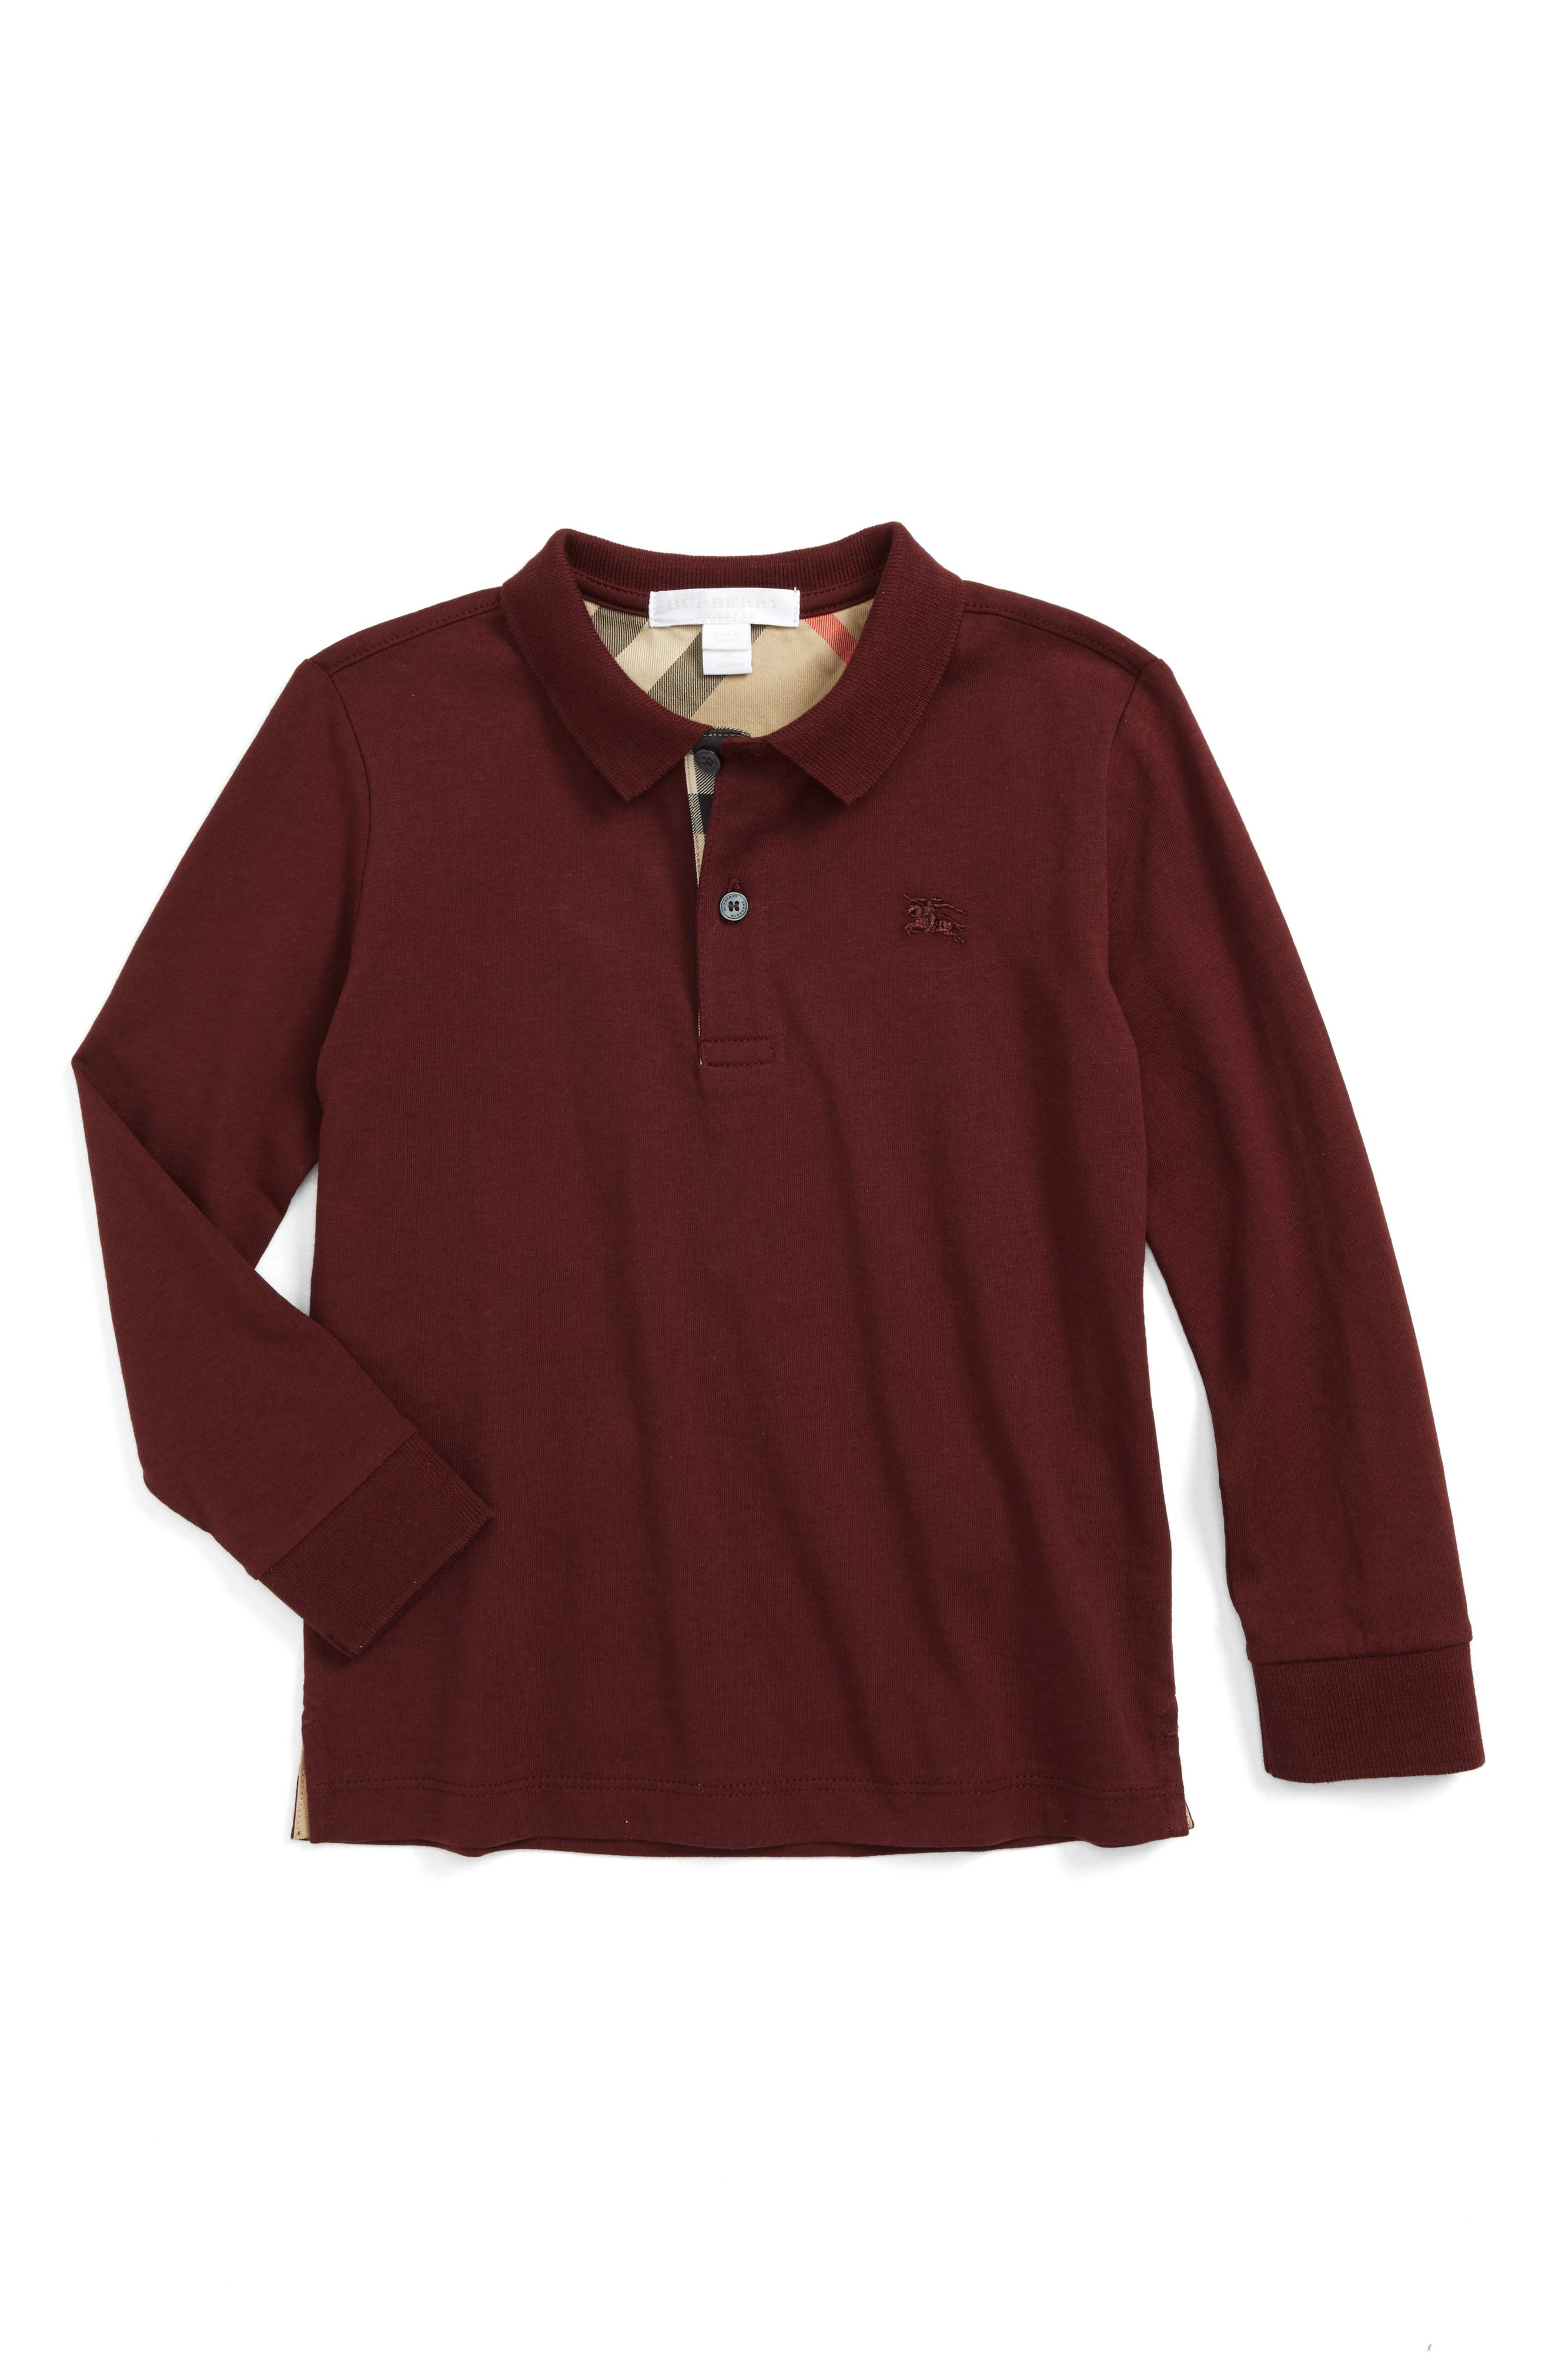 Main Image - Burberry 'Mini' Long Sleeve Polo Shirt (Little Boys & Big Boys)